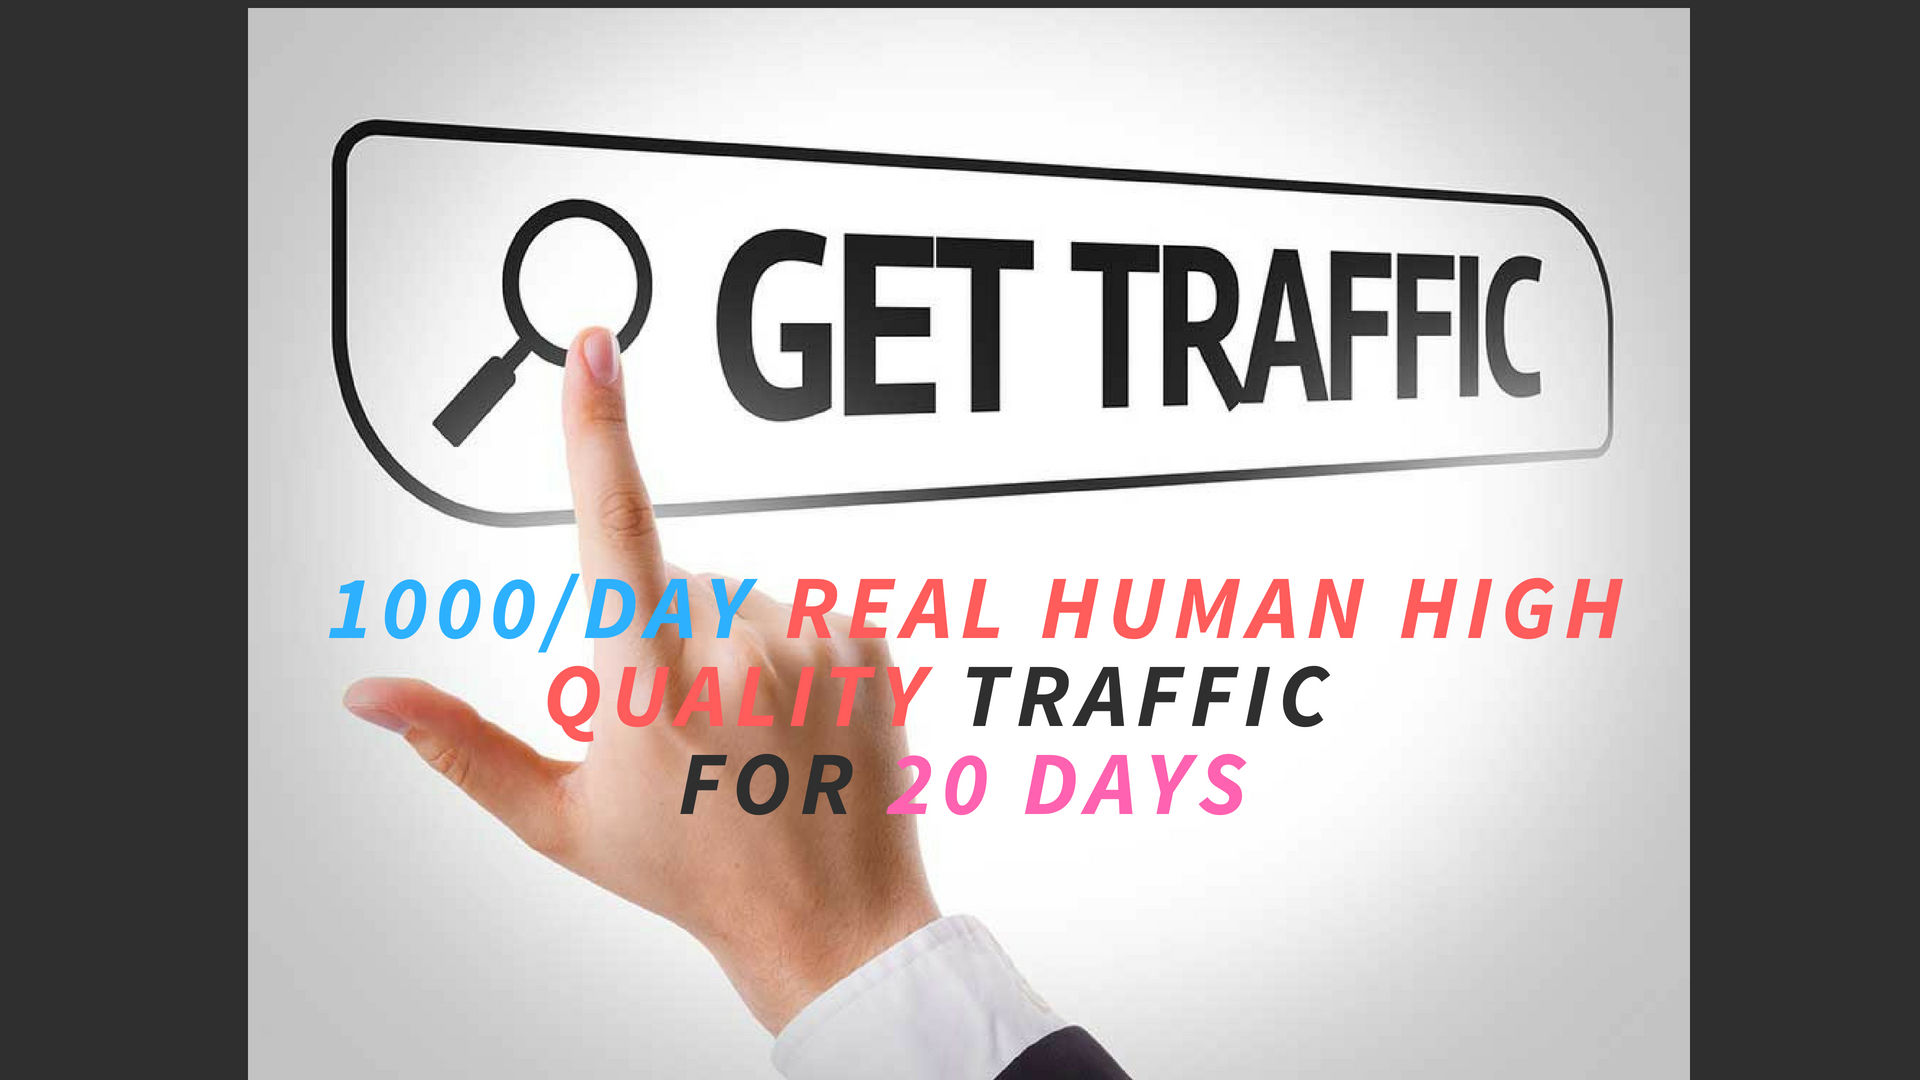 bring you real high quality traffic 1000 per day for 20 days